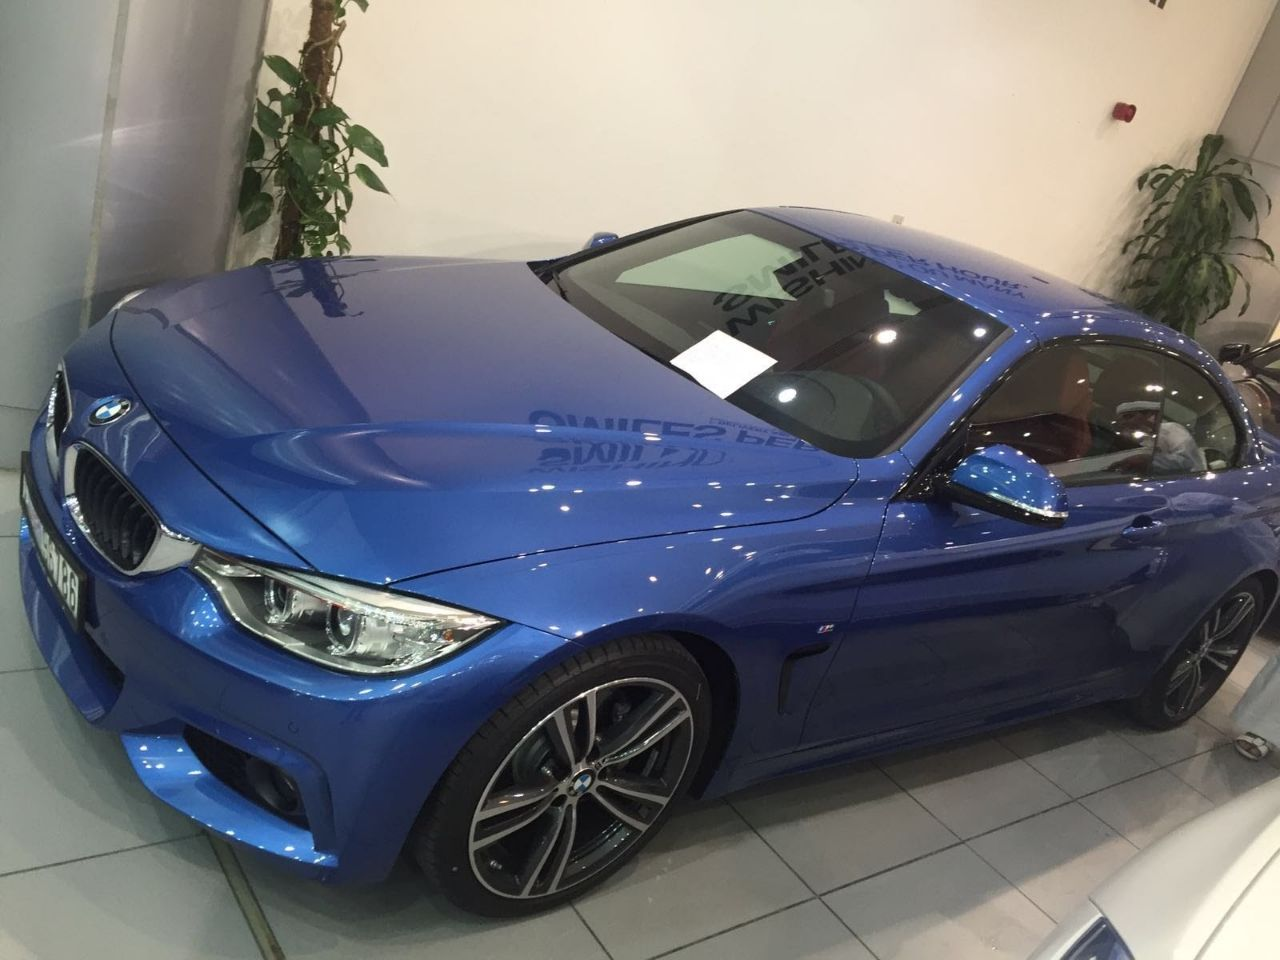 BMW 428<a href=default.asp?pid=9&catid=3&scatid=0  ><font color:#000>BOOK NOW</font></a>